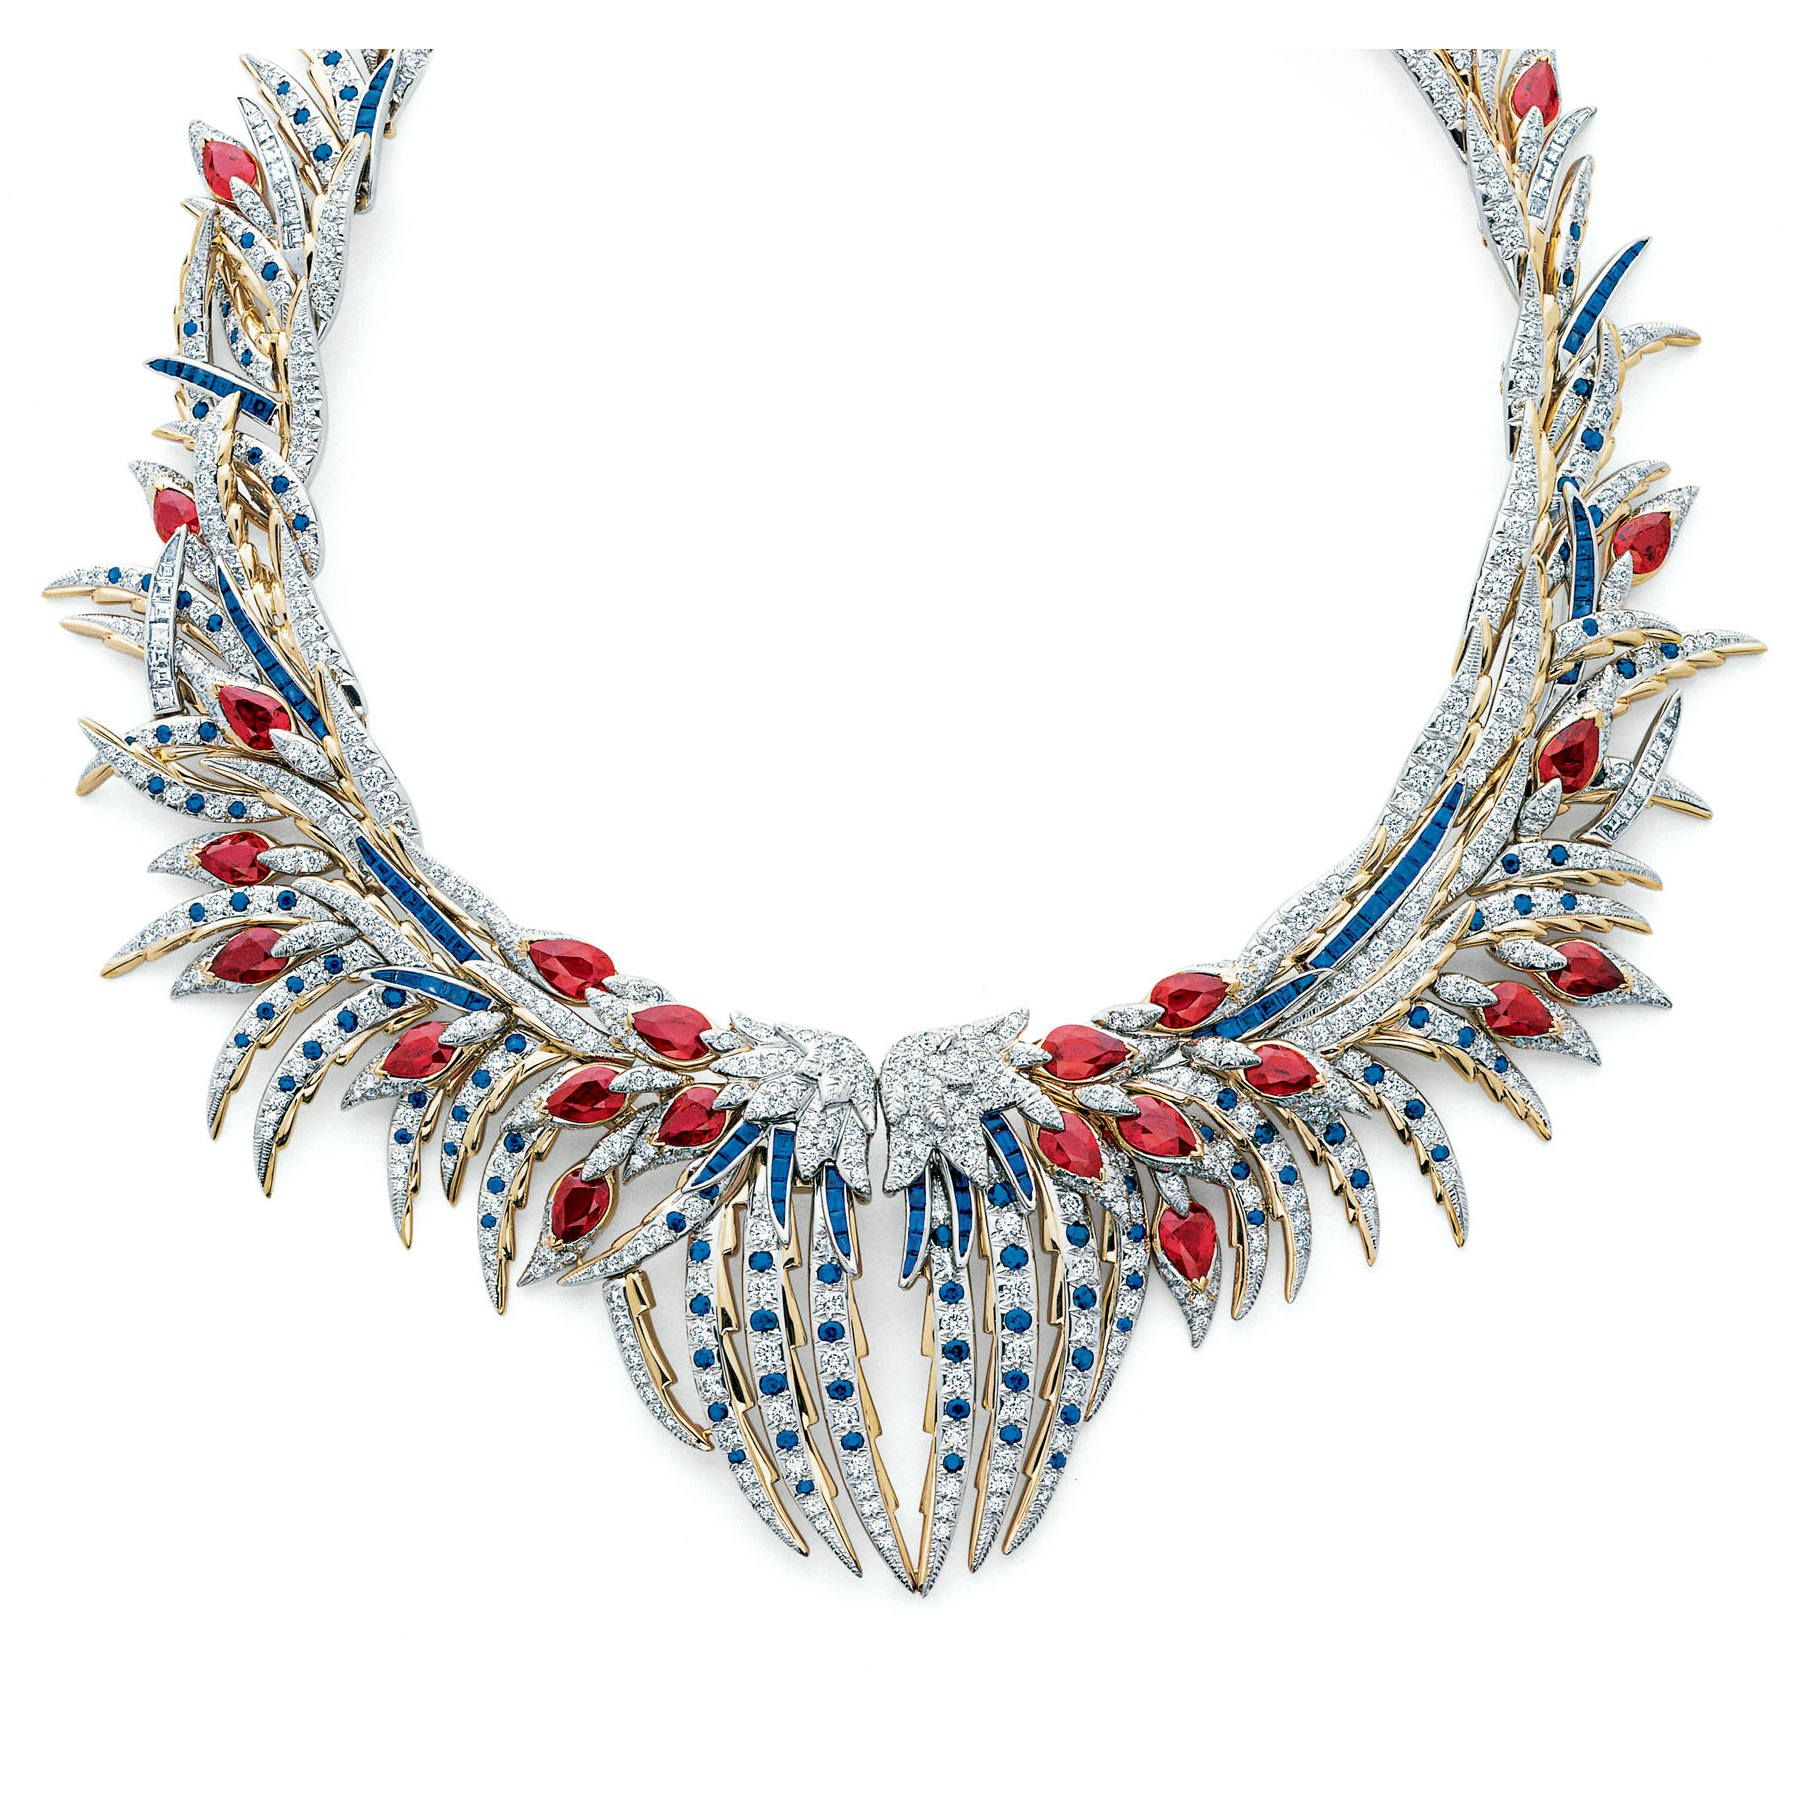 Designed by Jean Schlumberger for Tiffany.